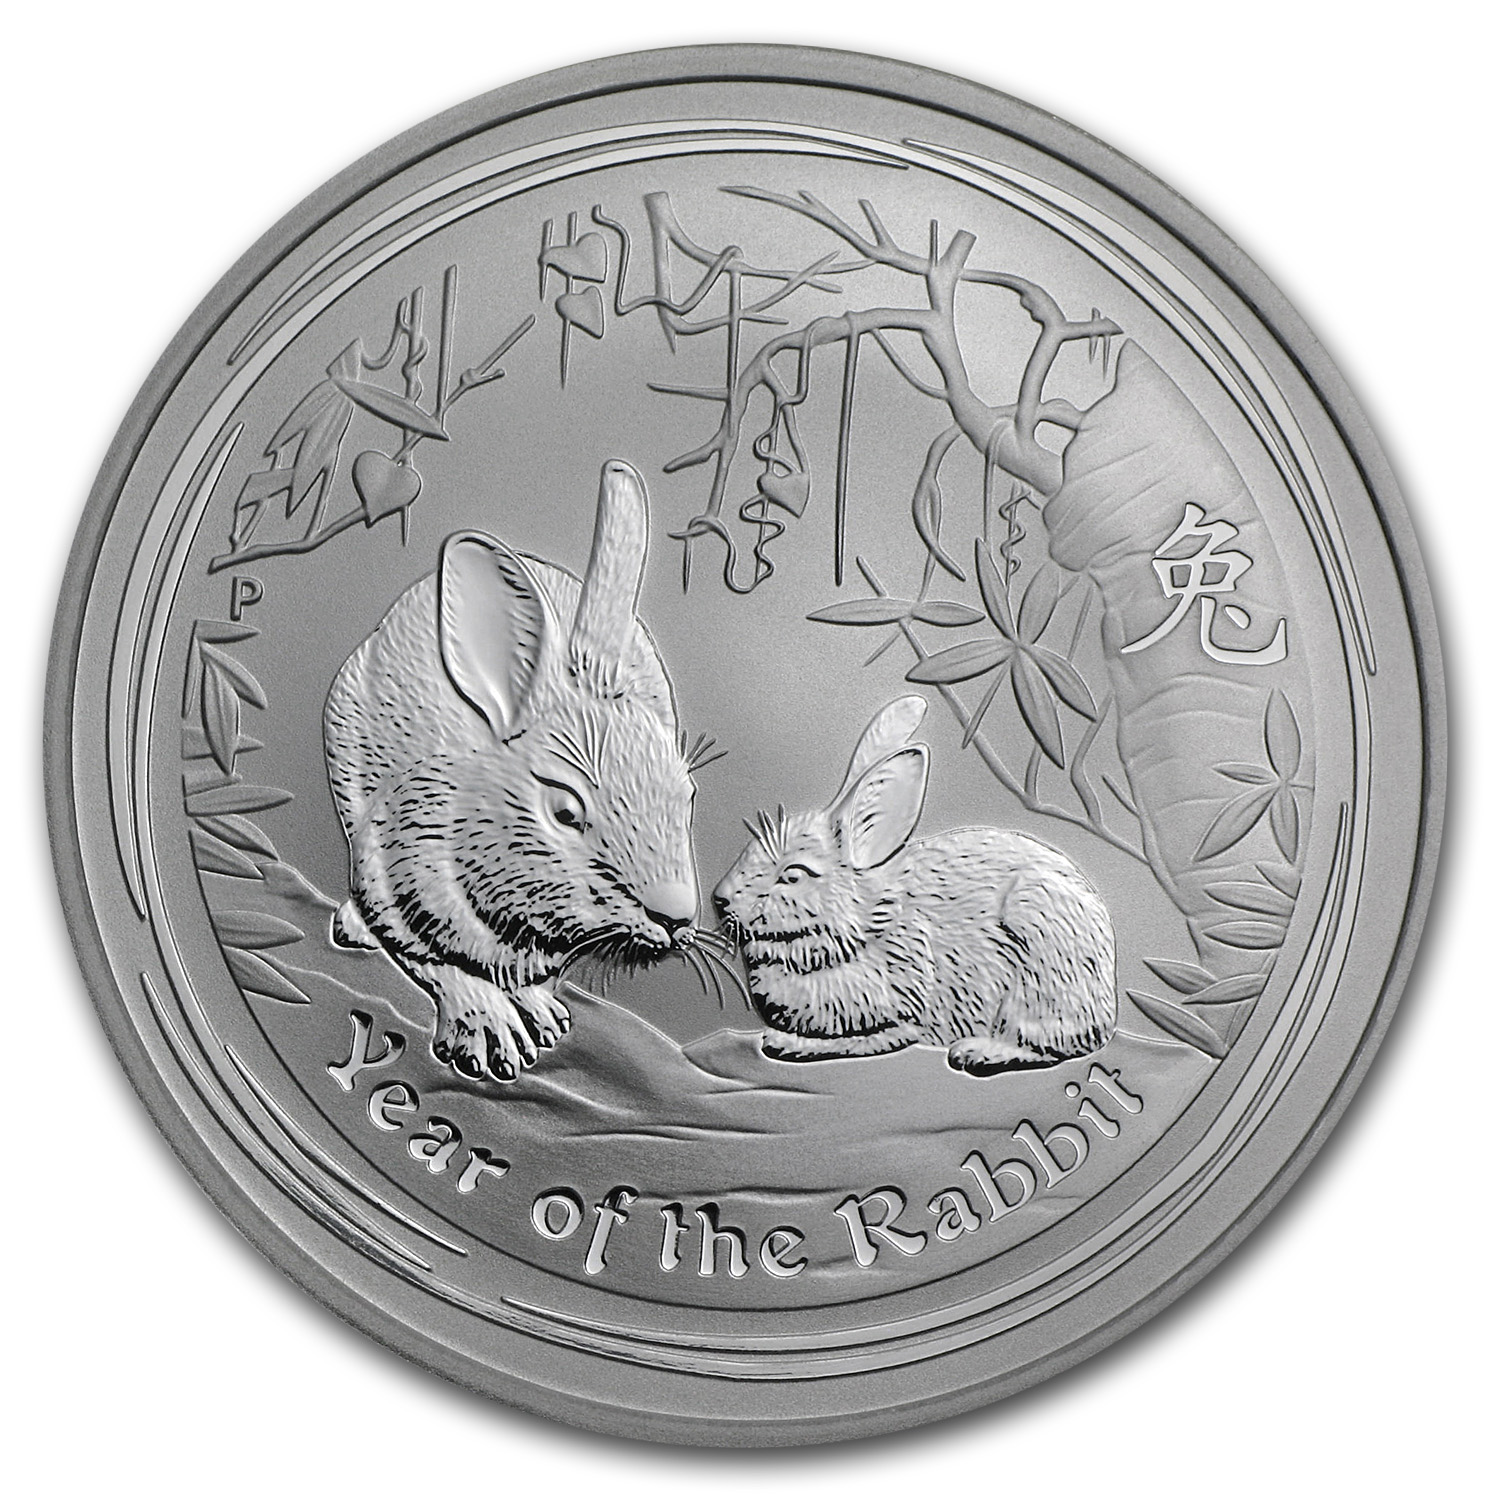 2011 Australia 1 oz Silver Year of the Rabbit BU